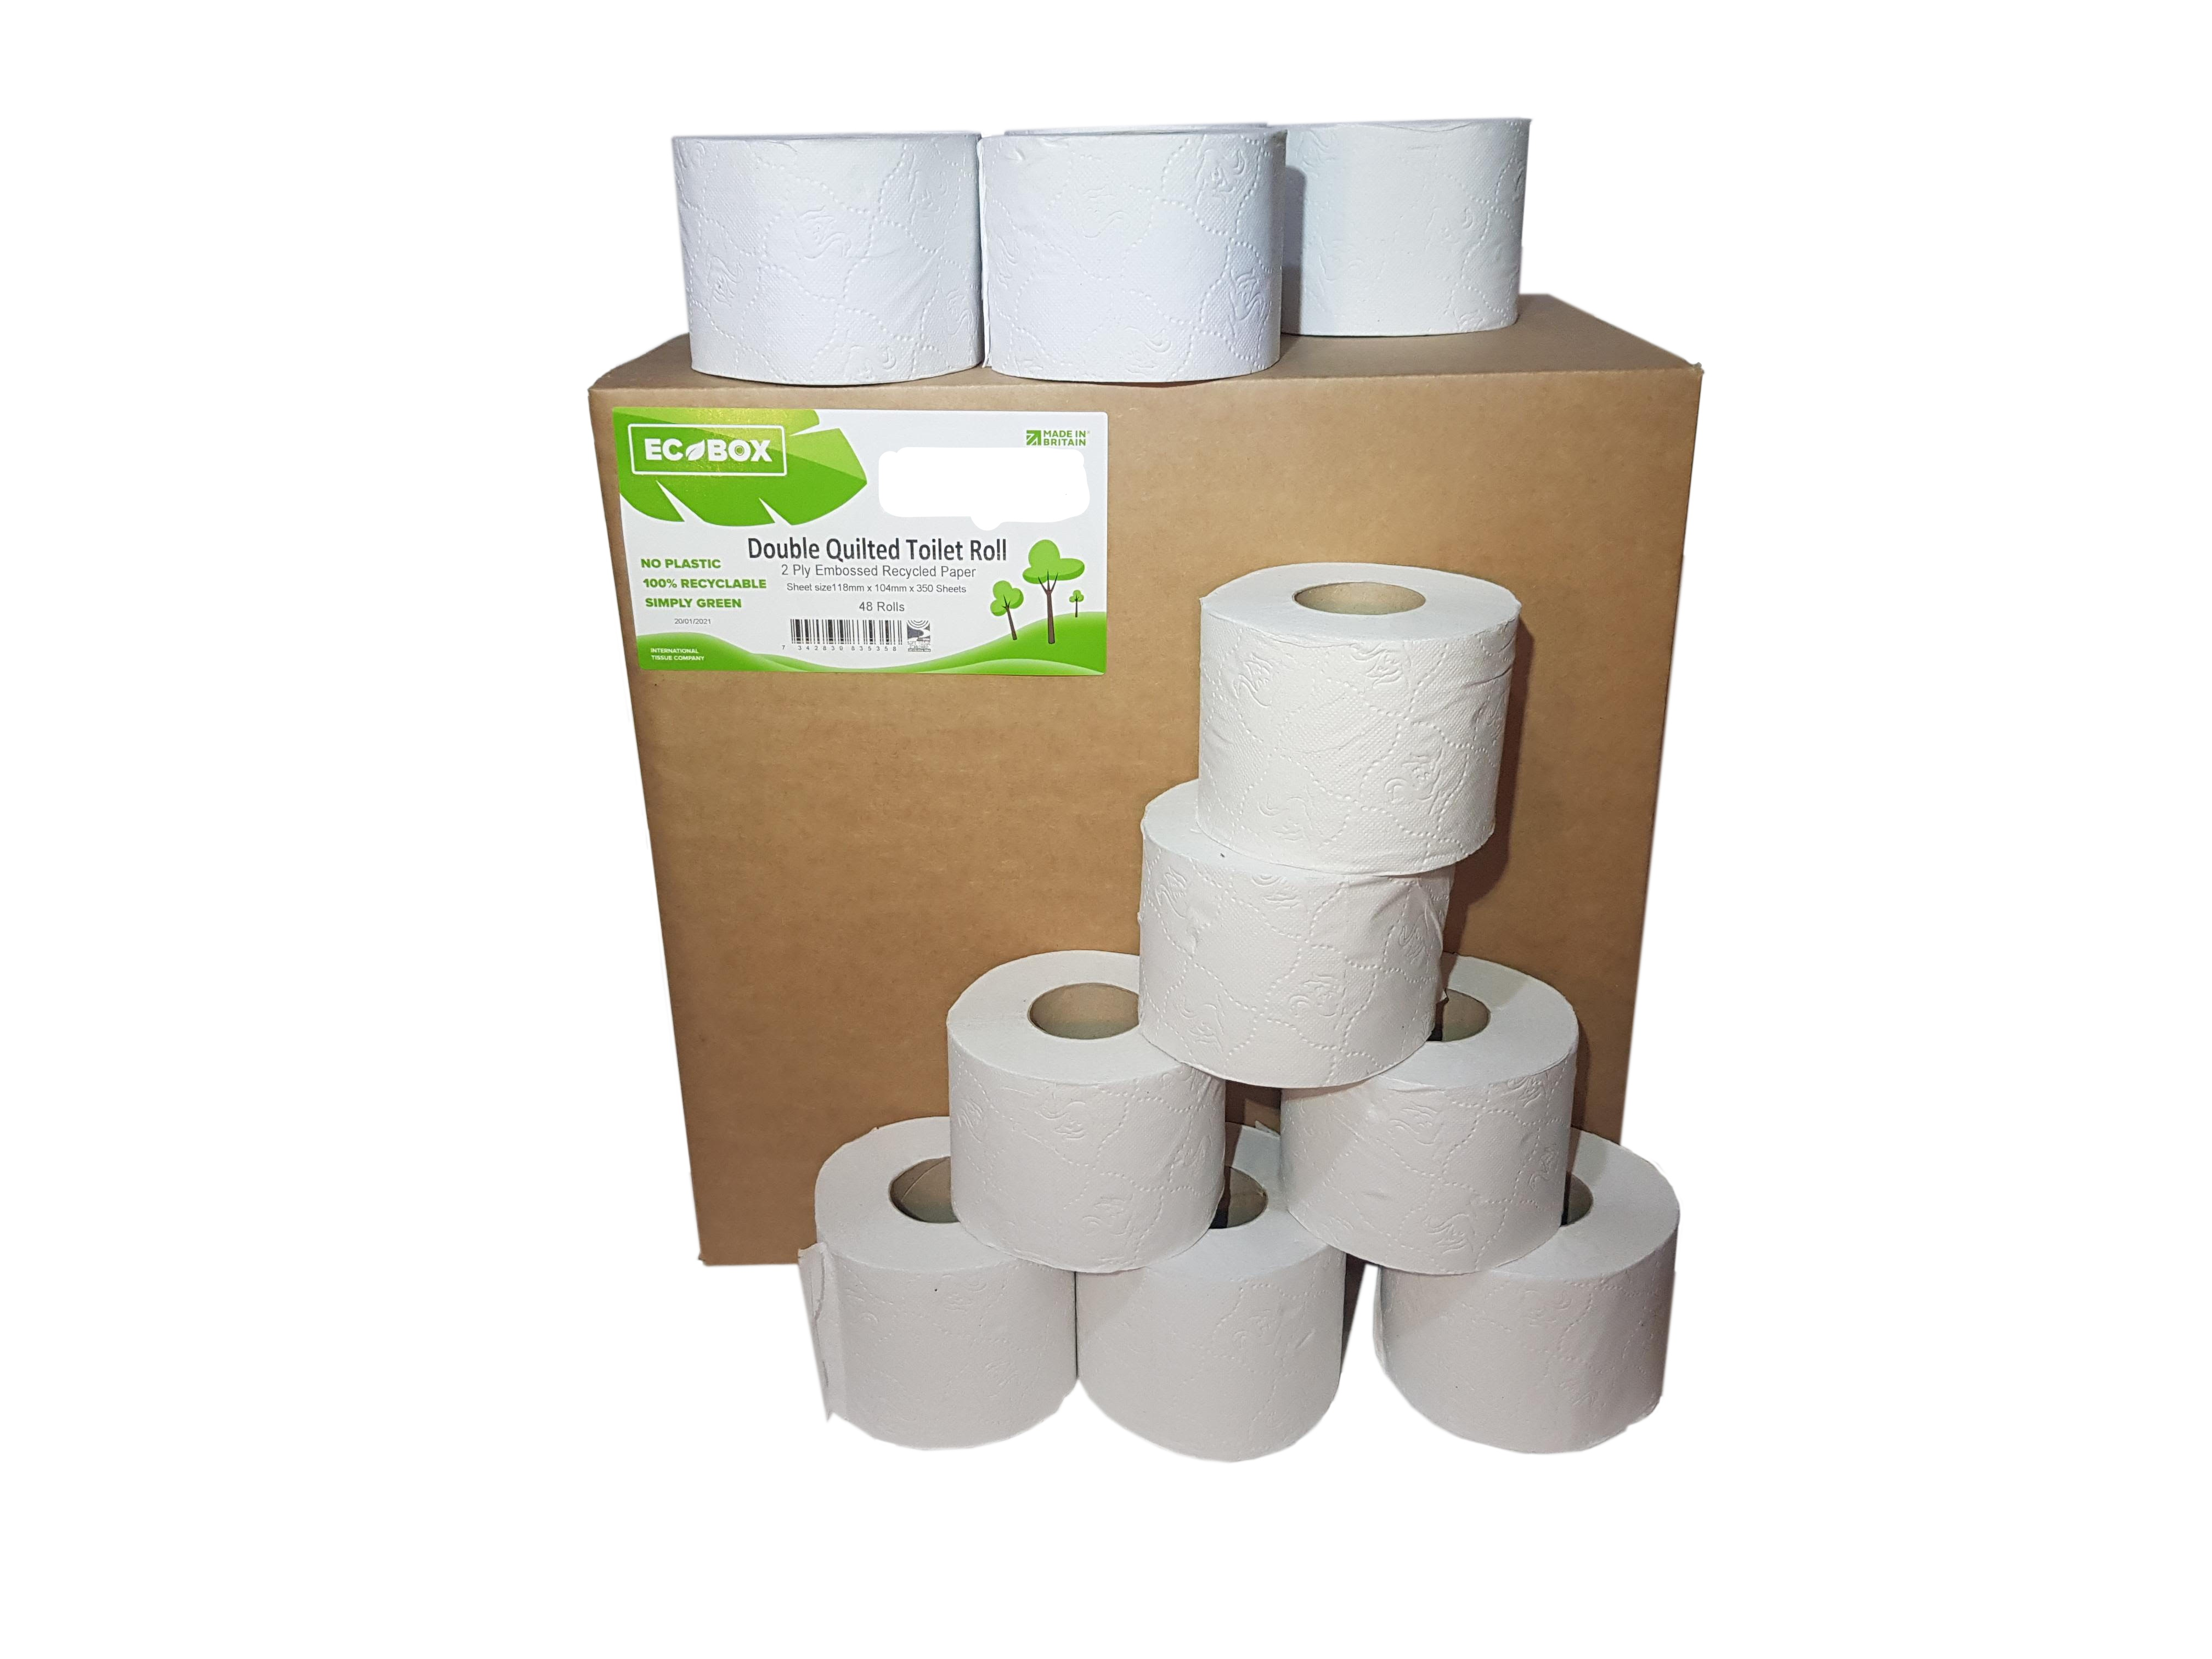 350 Sheet Double Quilted Recycled Toilet Roll x 48 Rolls